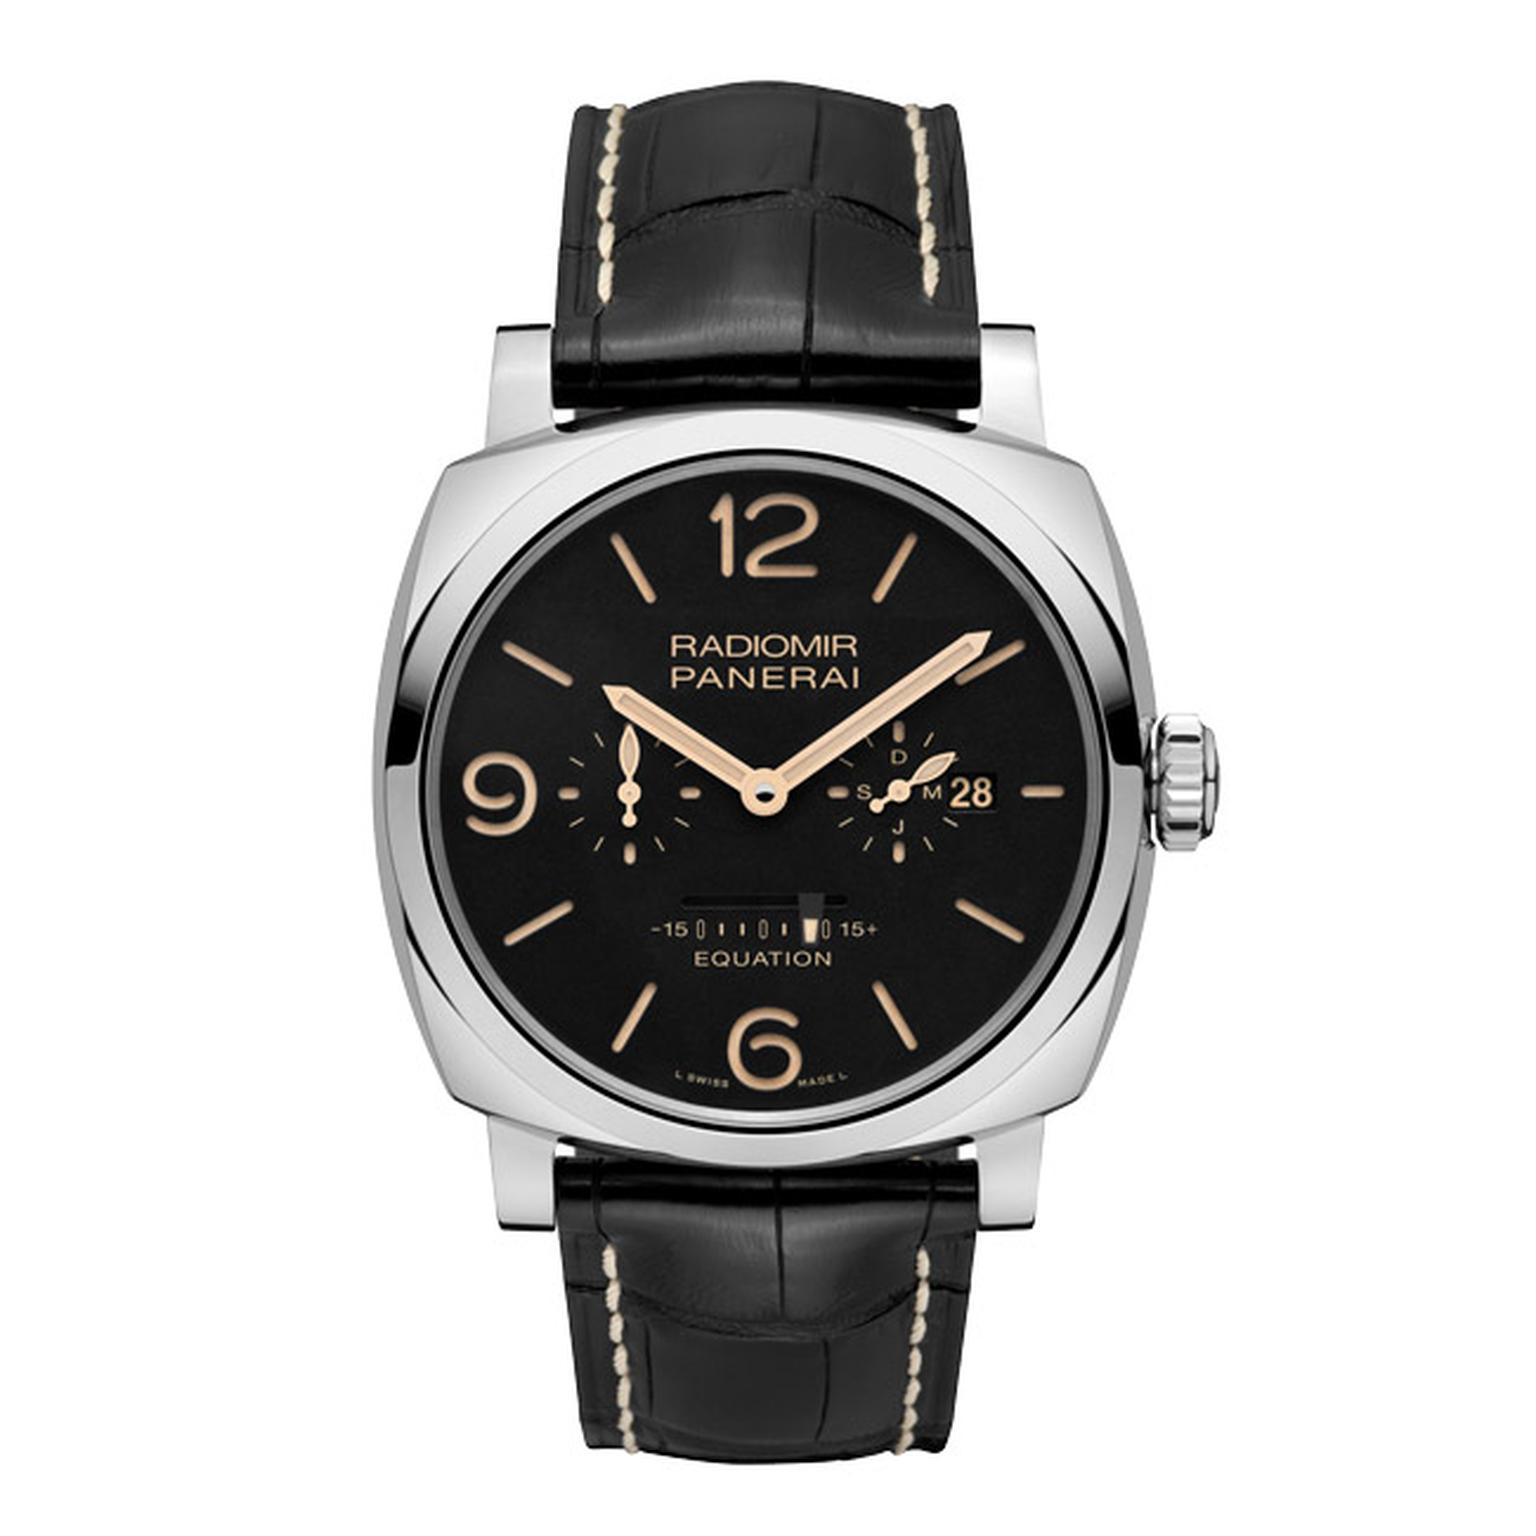 Panerai Radomir Equations of Time Main